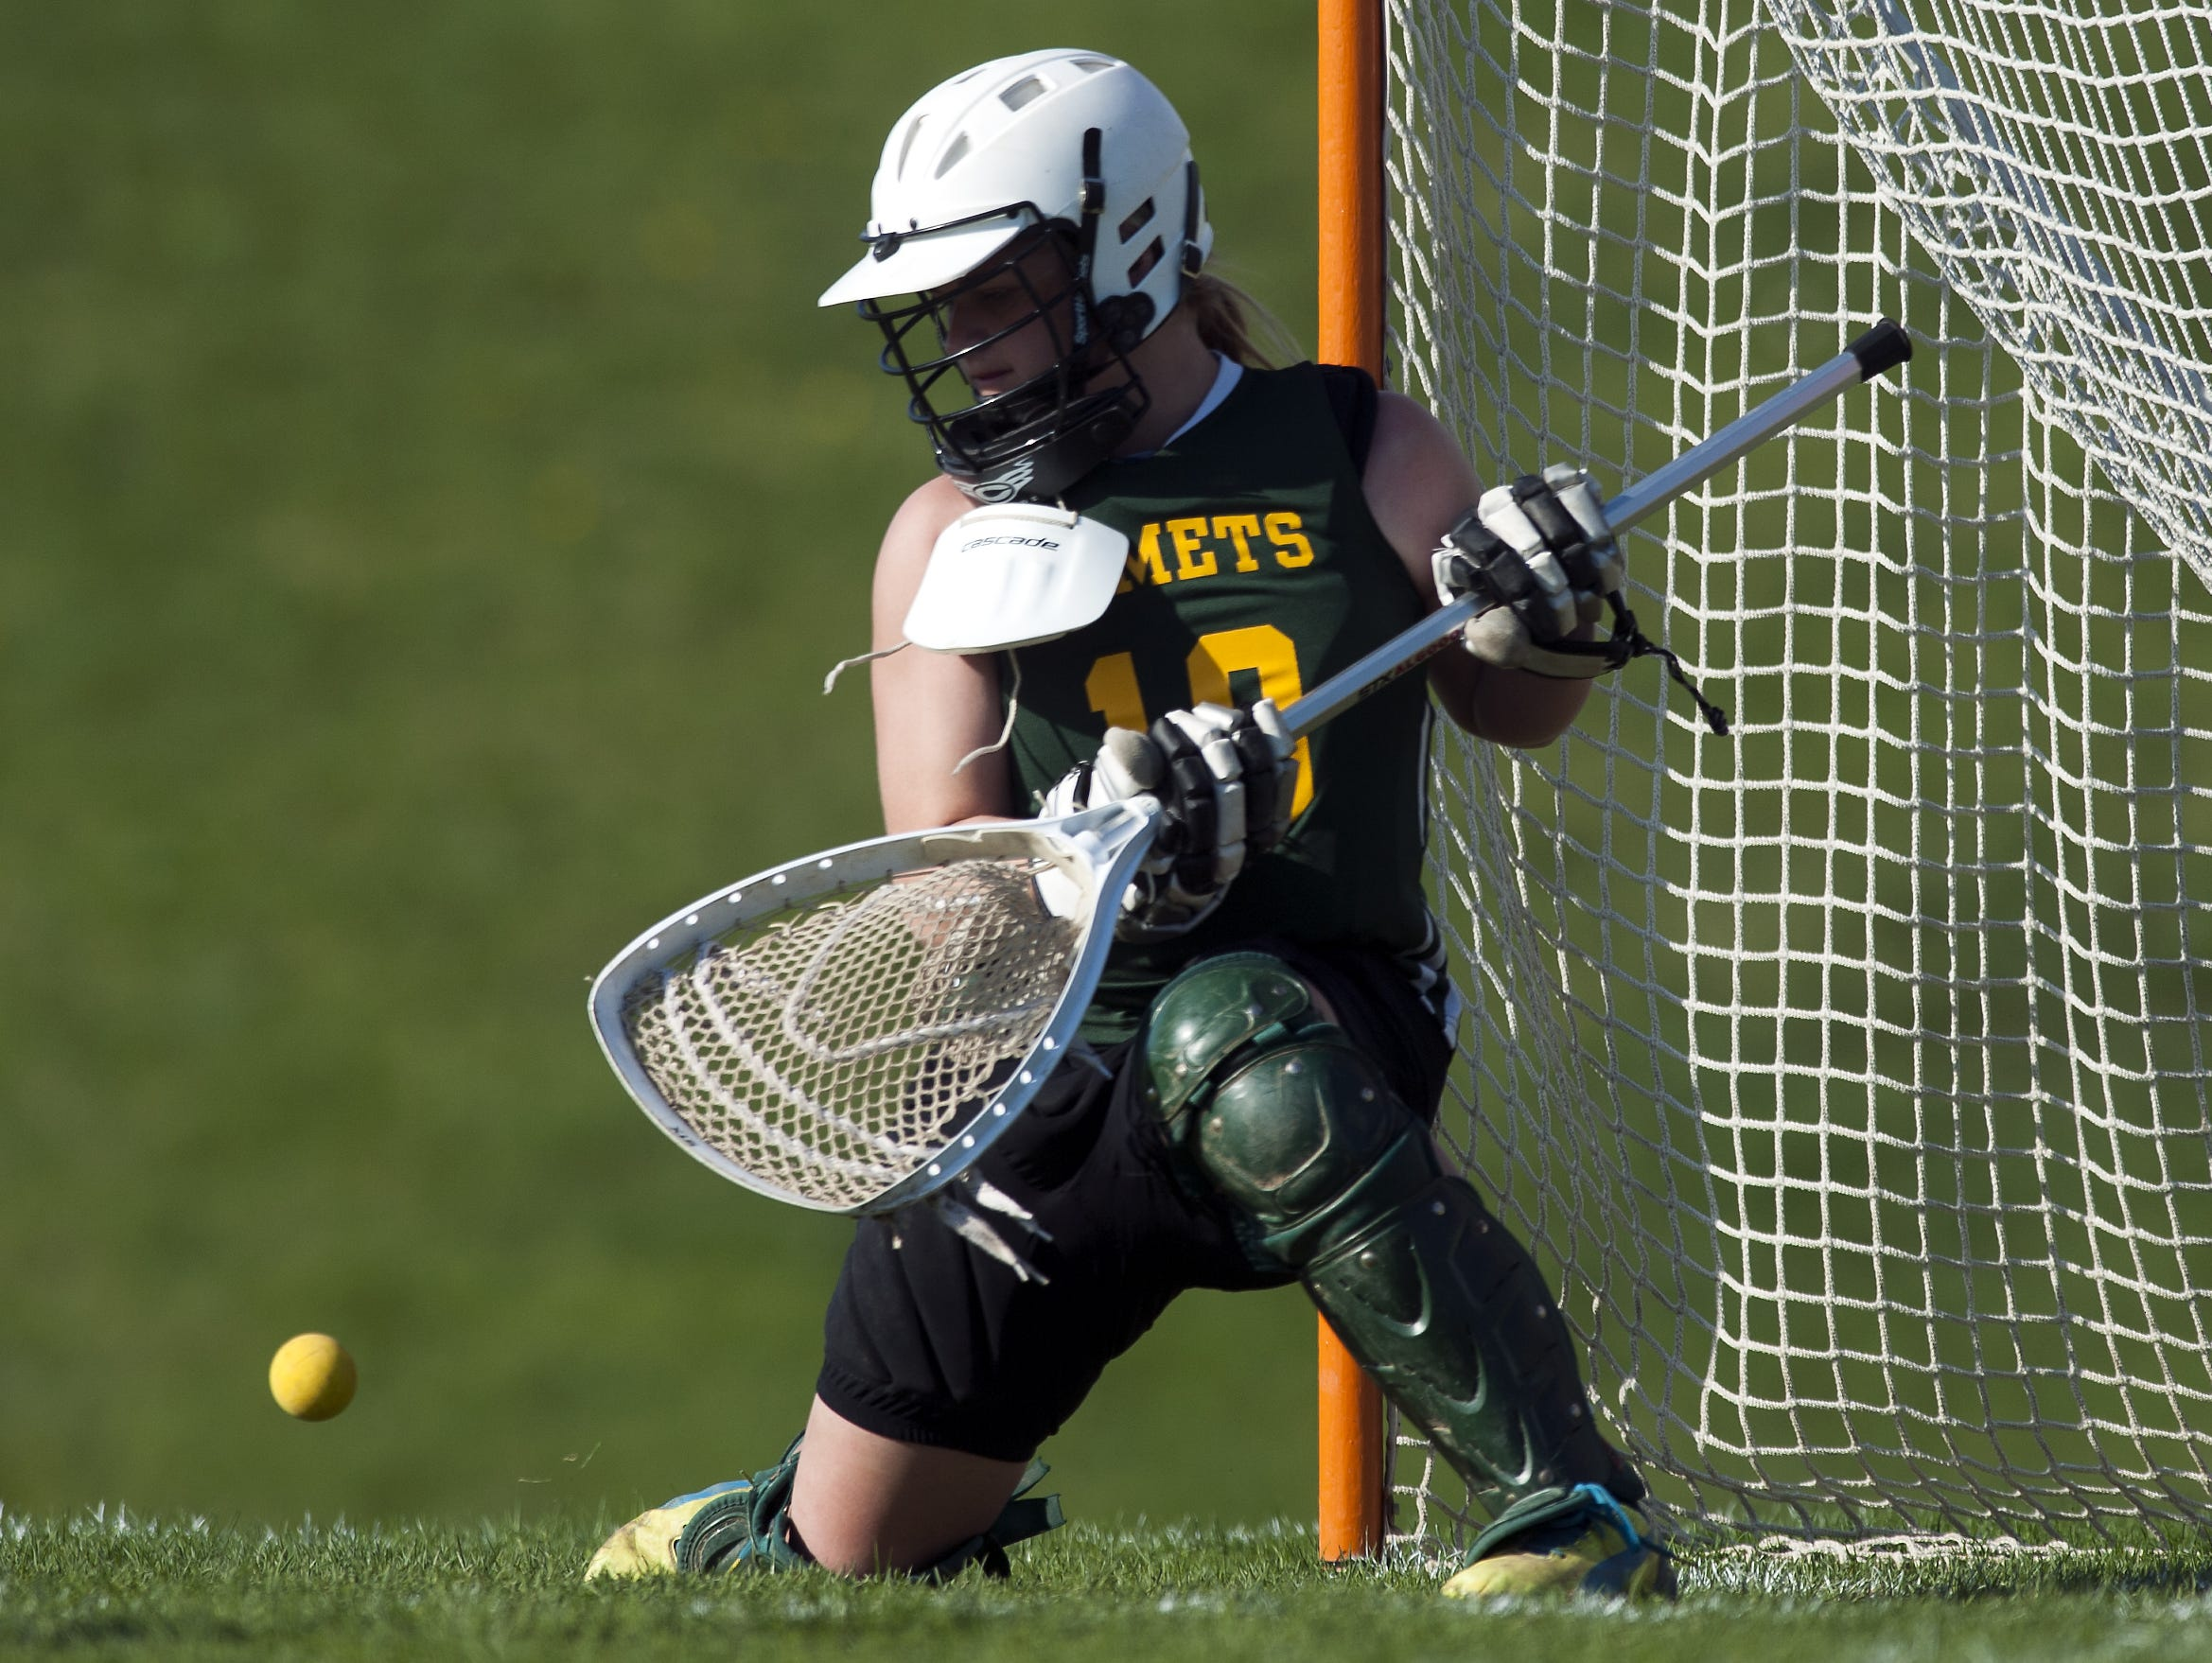 BFA goalie Maria Magnan (19) makes a save during the girls lacrosse game between BFA St. Albans and Champlain Valley on Thursday in Hinesburg.